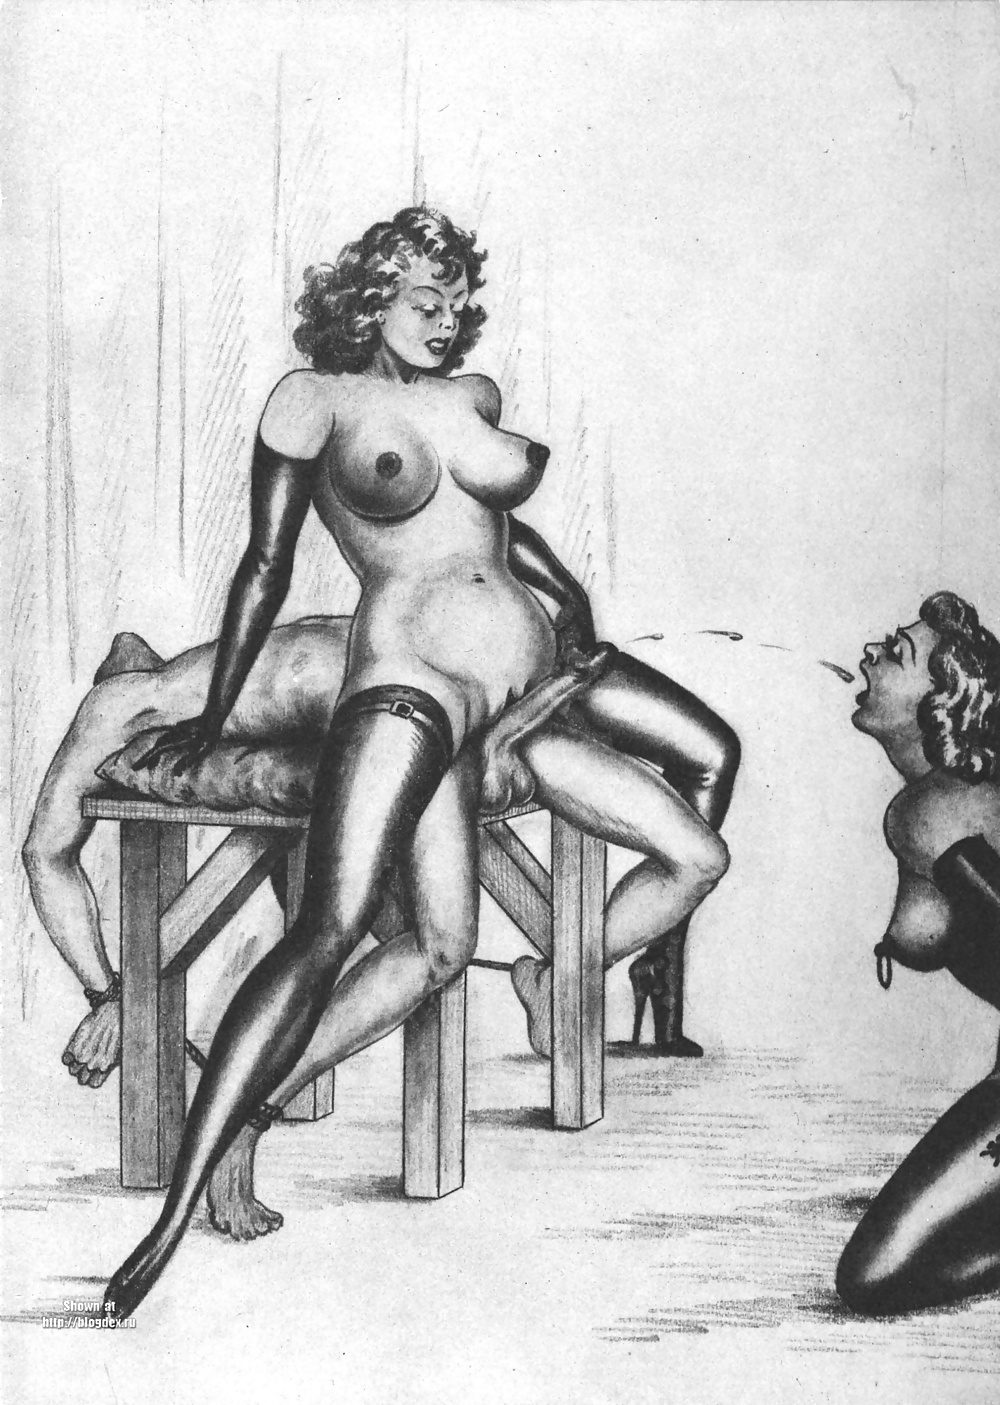 Femdom drawings color artists german, sexy iraqi women naked